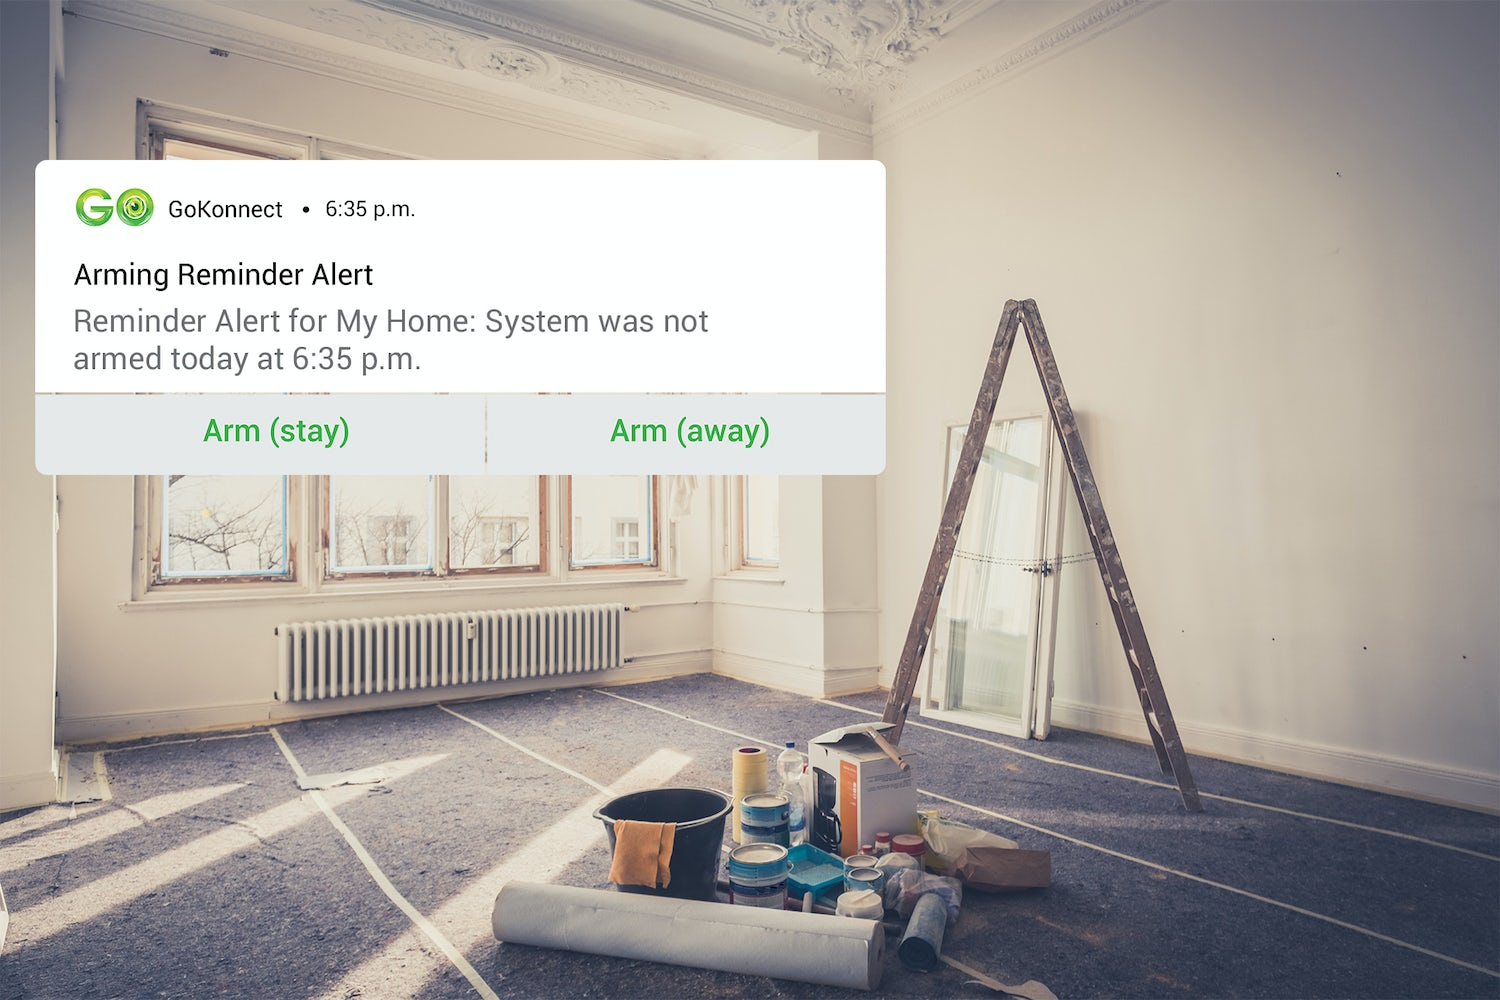 Renovating your home? Use GoKonnect Smart Home Security.